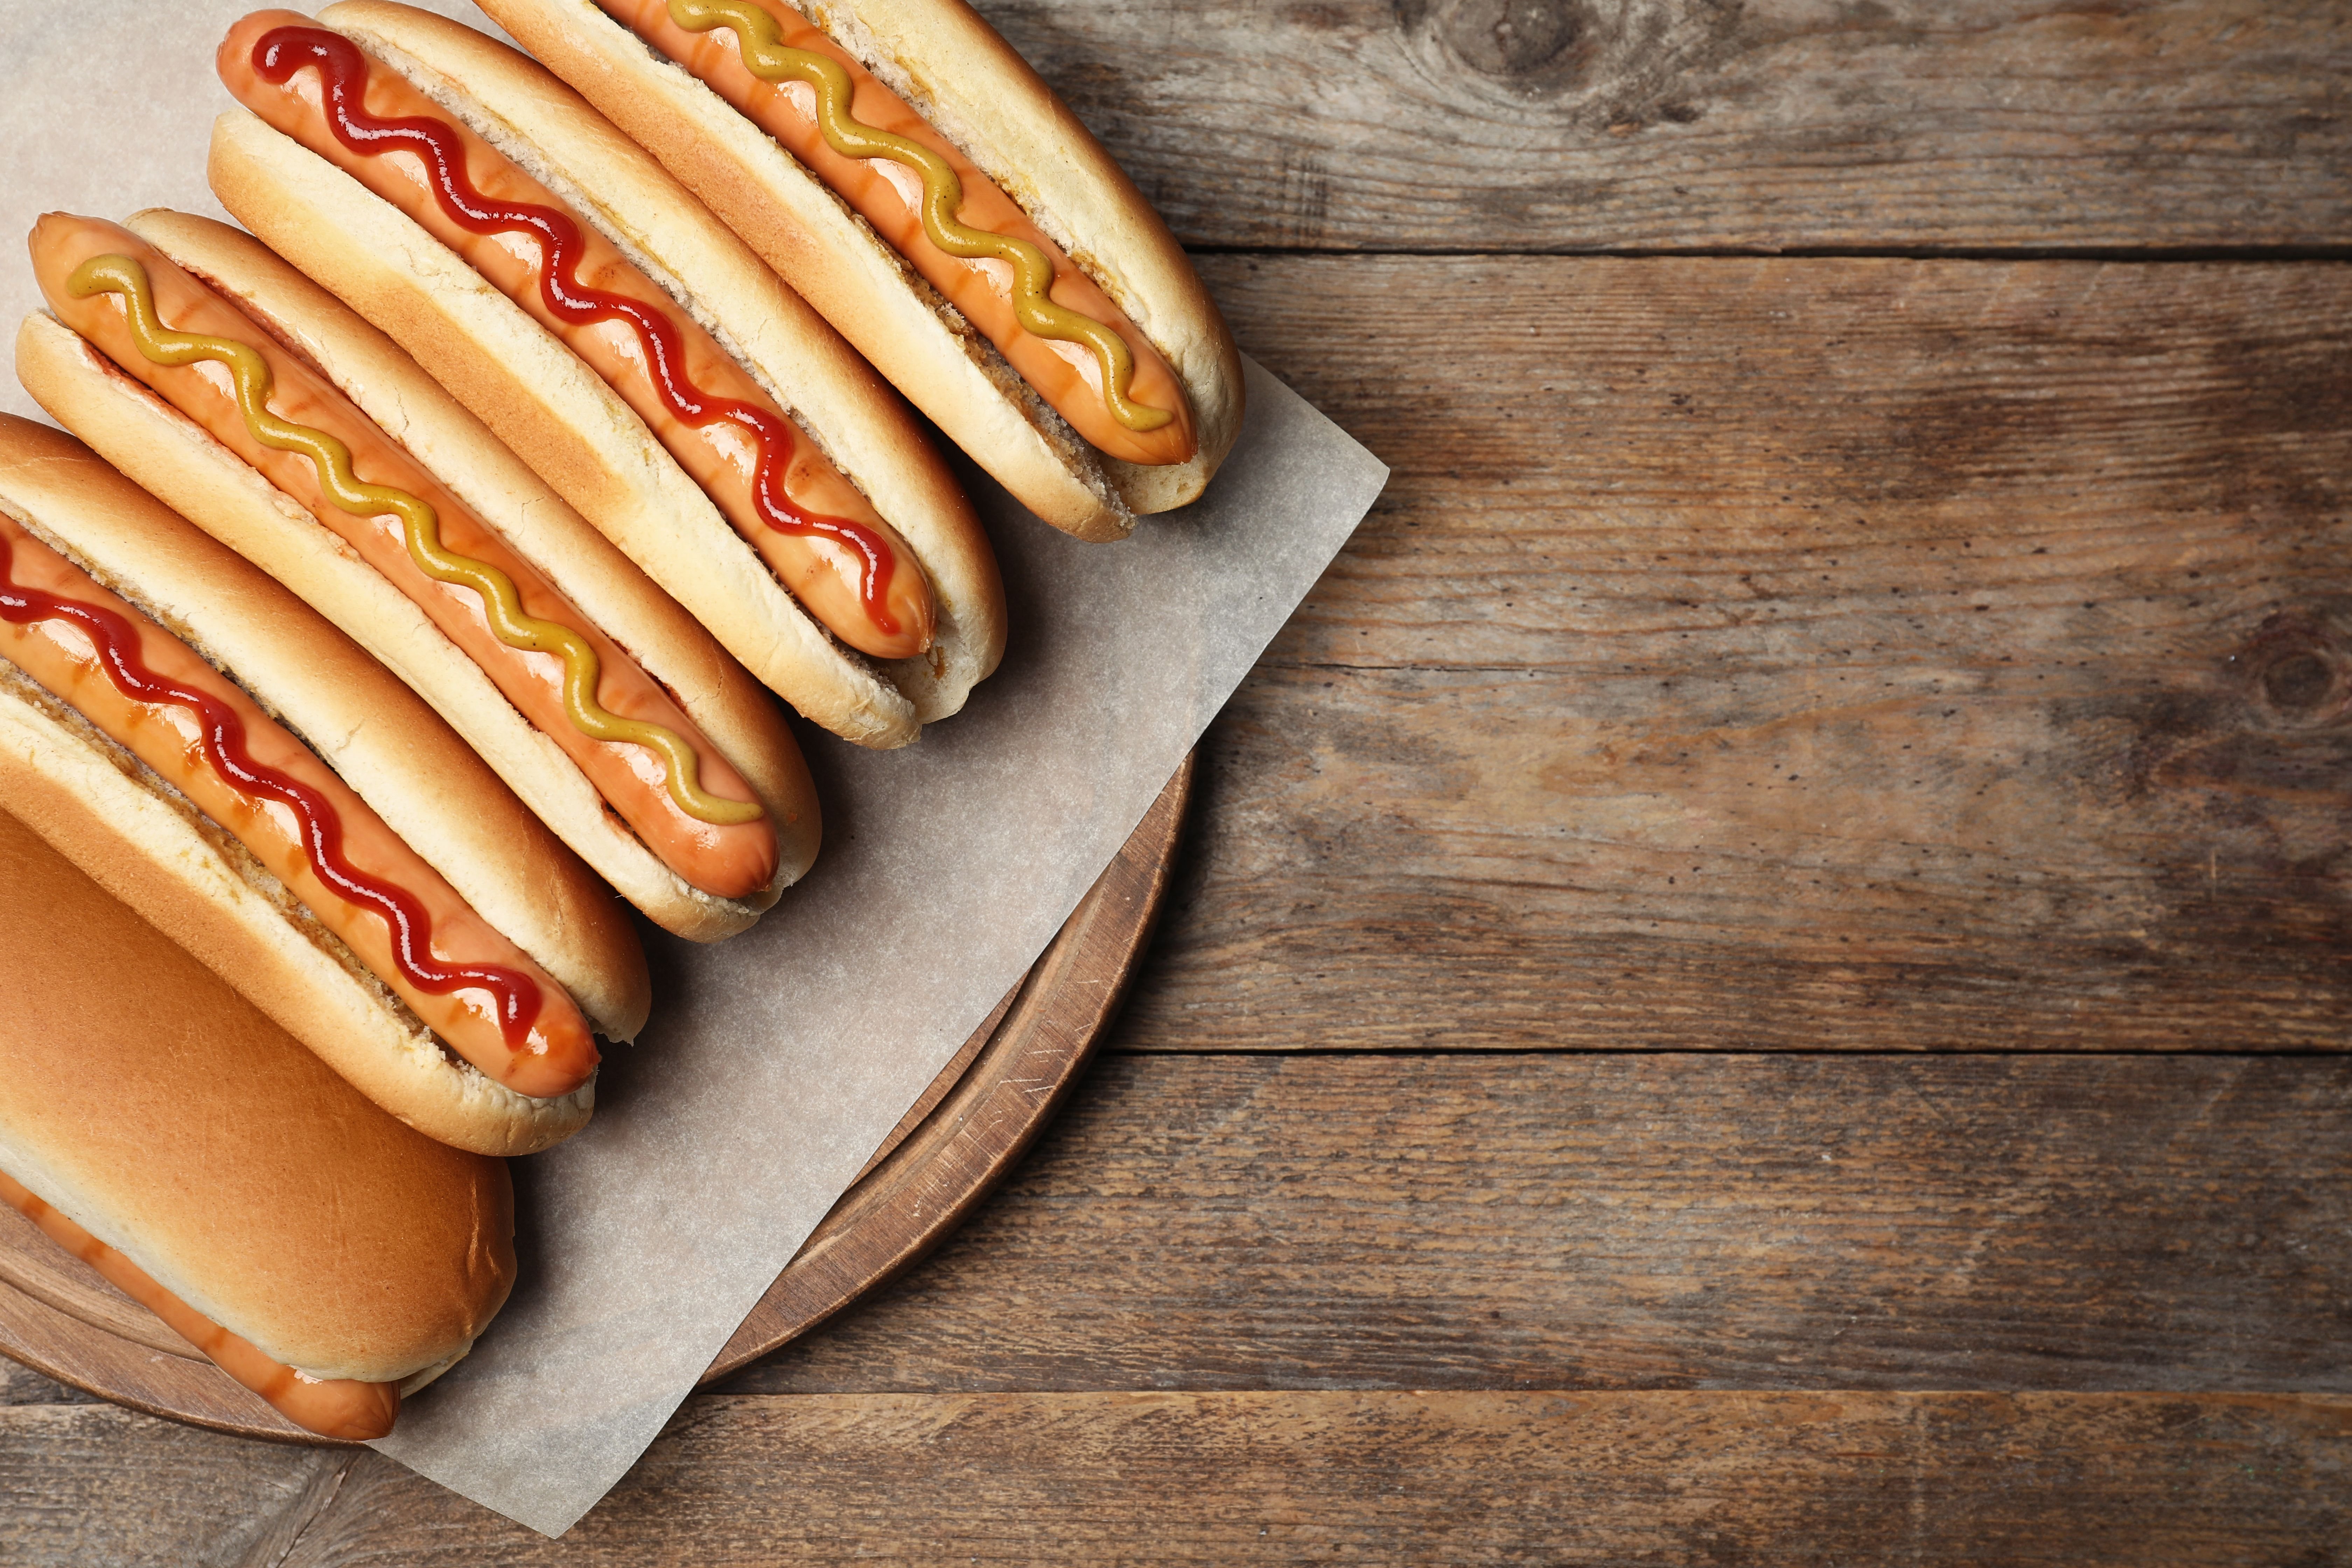 Hot dogs are great, but too much starchy bread/buns is not